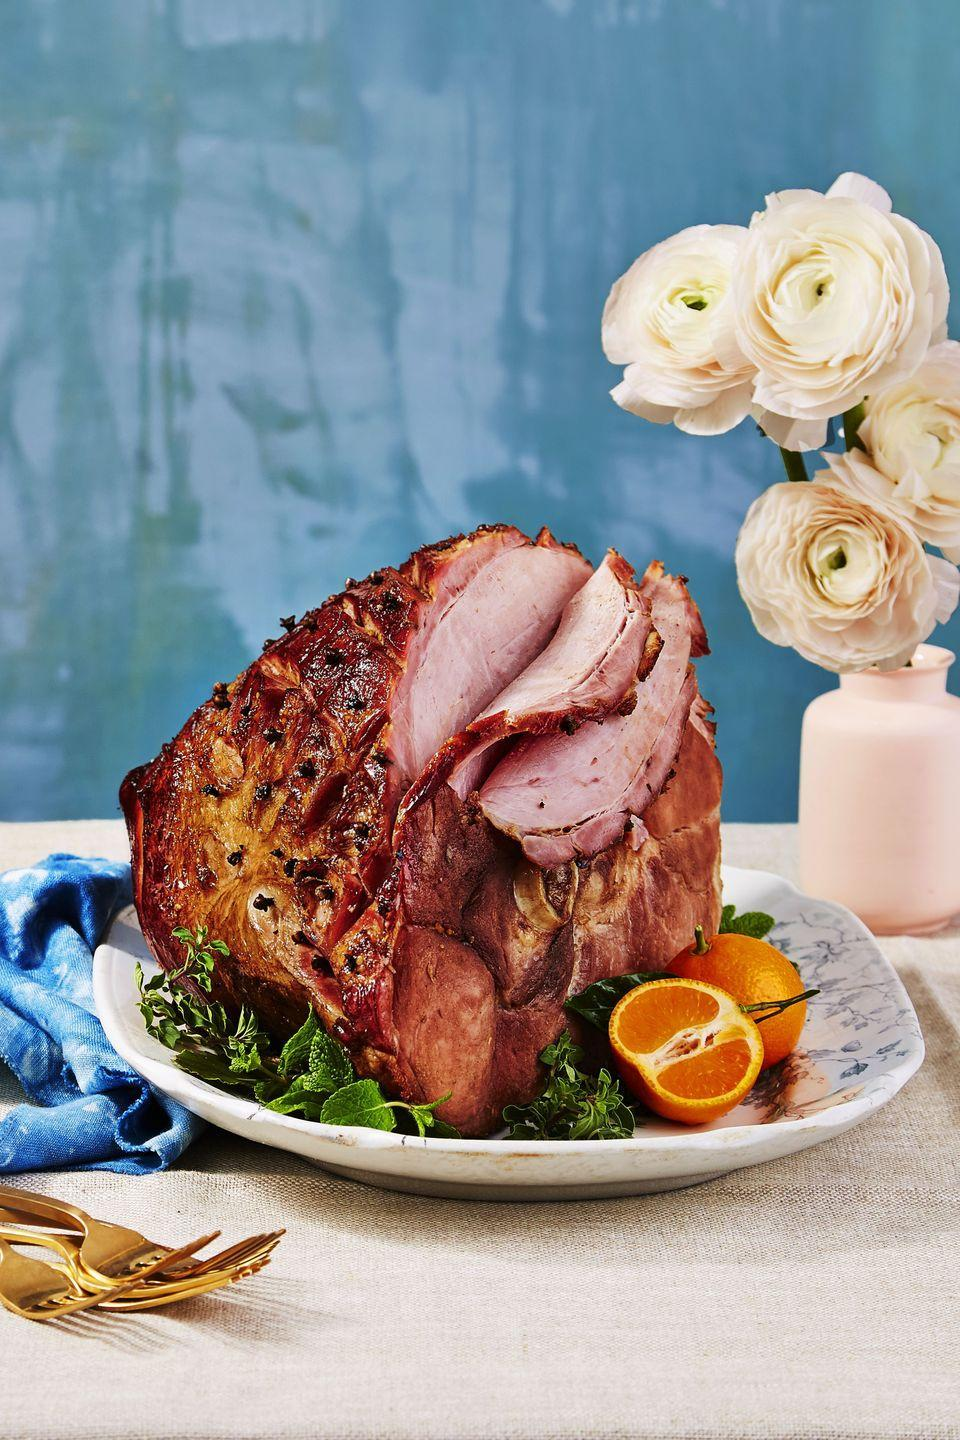 "<p>The secret to this fancy ham's undeniably sweet flavor? A big can of fizzy root beer.</p><p><a href=""https://www.goodhousekeeping.com/food-recipes/a37453/baked-ham-with-root-beer-glaze-recipe/"" rel=""nofollow noopener"" target=""_blank"" data-ylk=""slk:Get the recipe for Baked Ham with Root Beer Glaze »"" class=""link rapid-noclick-resp""><em>Get the recipe for Baked Ham with Root Beer Glaze »</em></a> </p>"